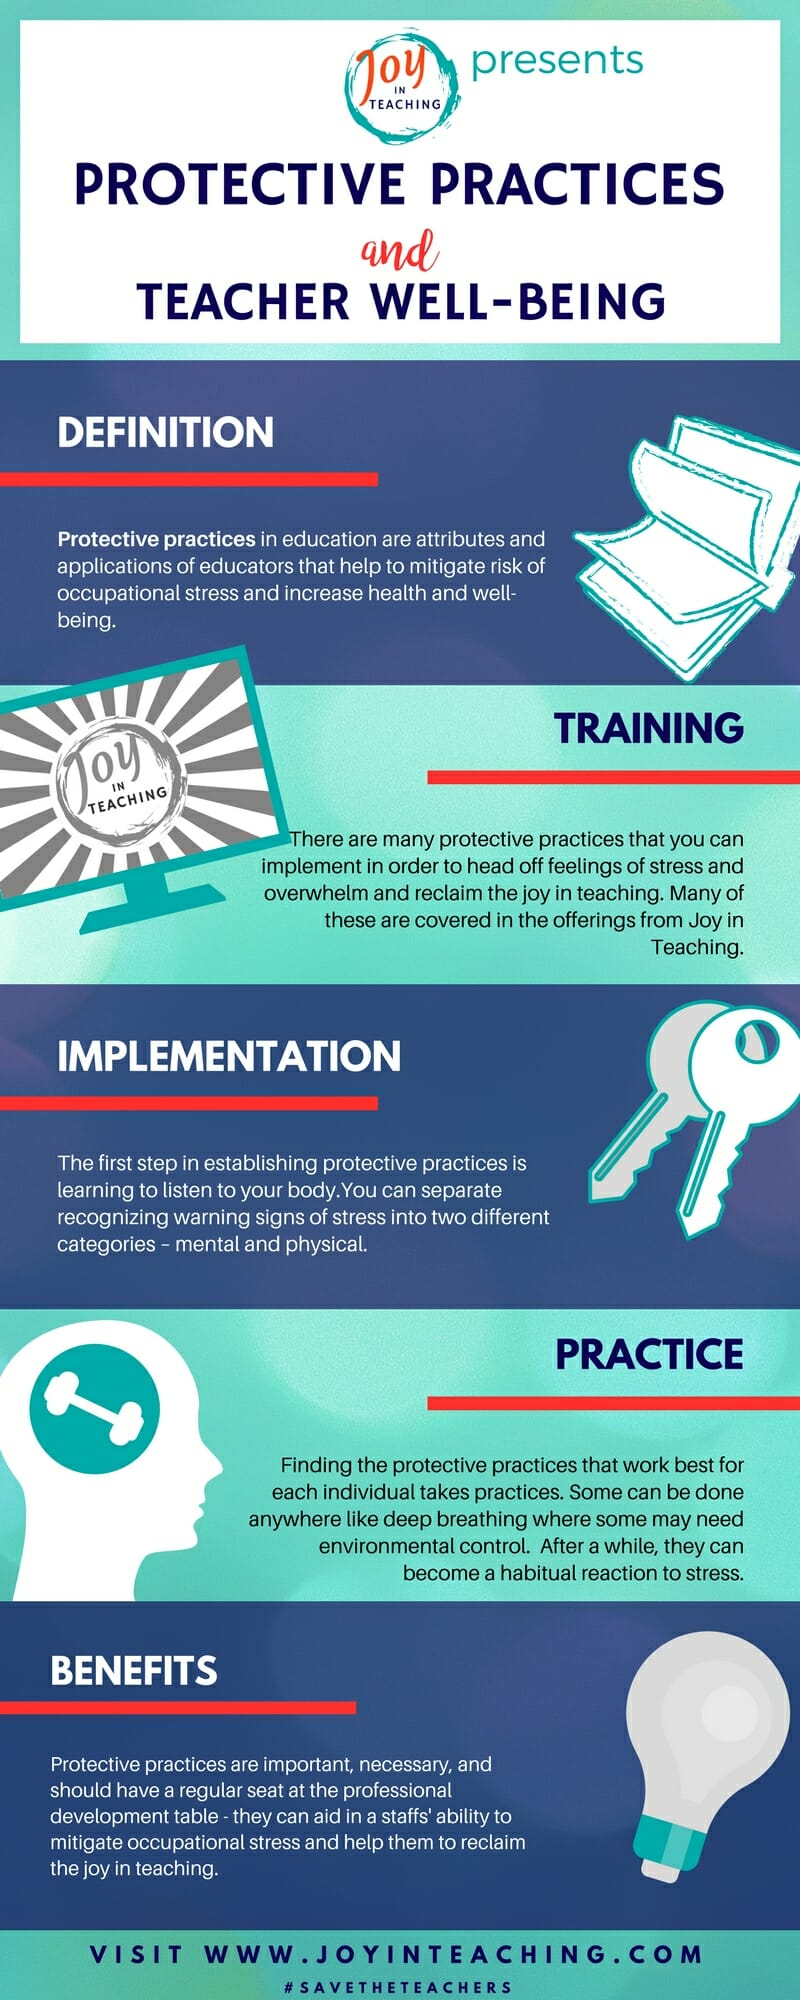 Protective Practices and Teacher Well-Being Infographic